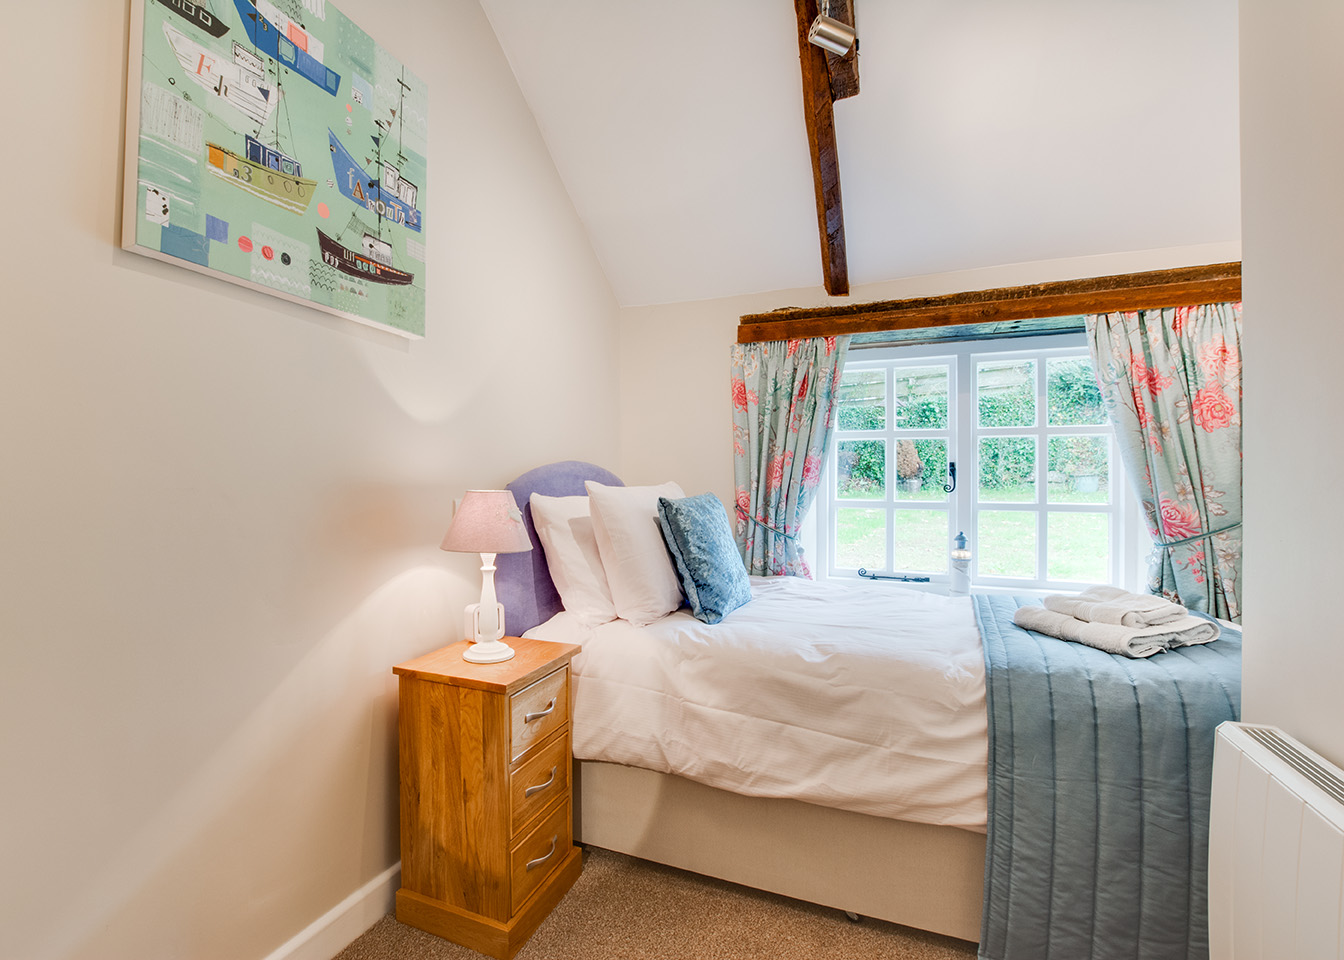 The single bedroom of Snappers luxury self catering converted barn holiday cottage at Penrose Burden in North Cornwall 02.jpg